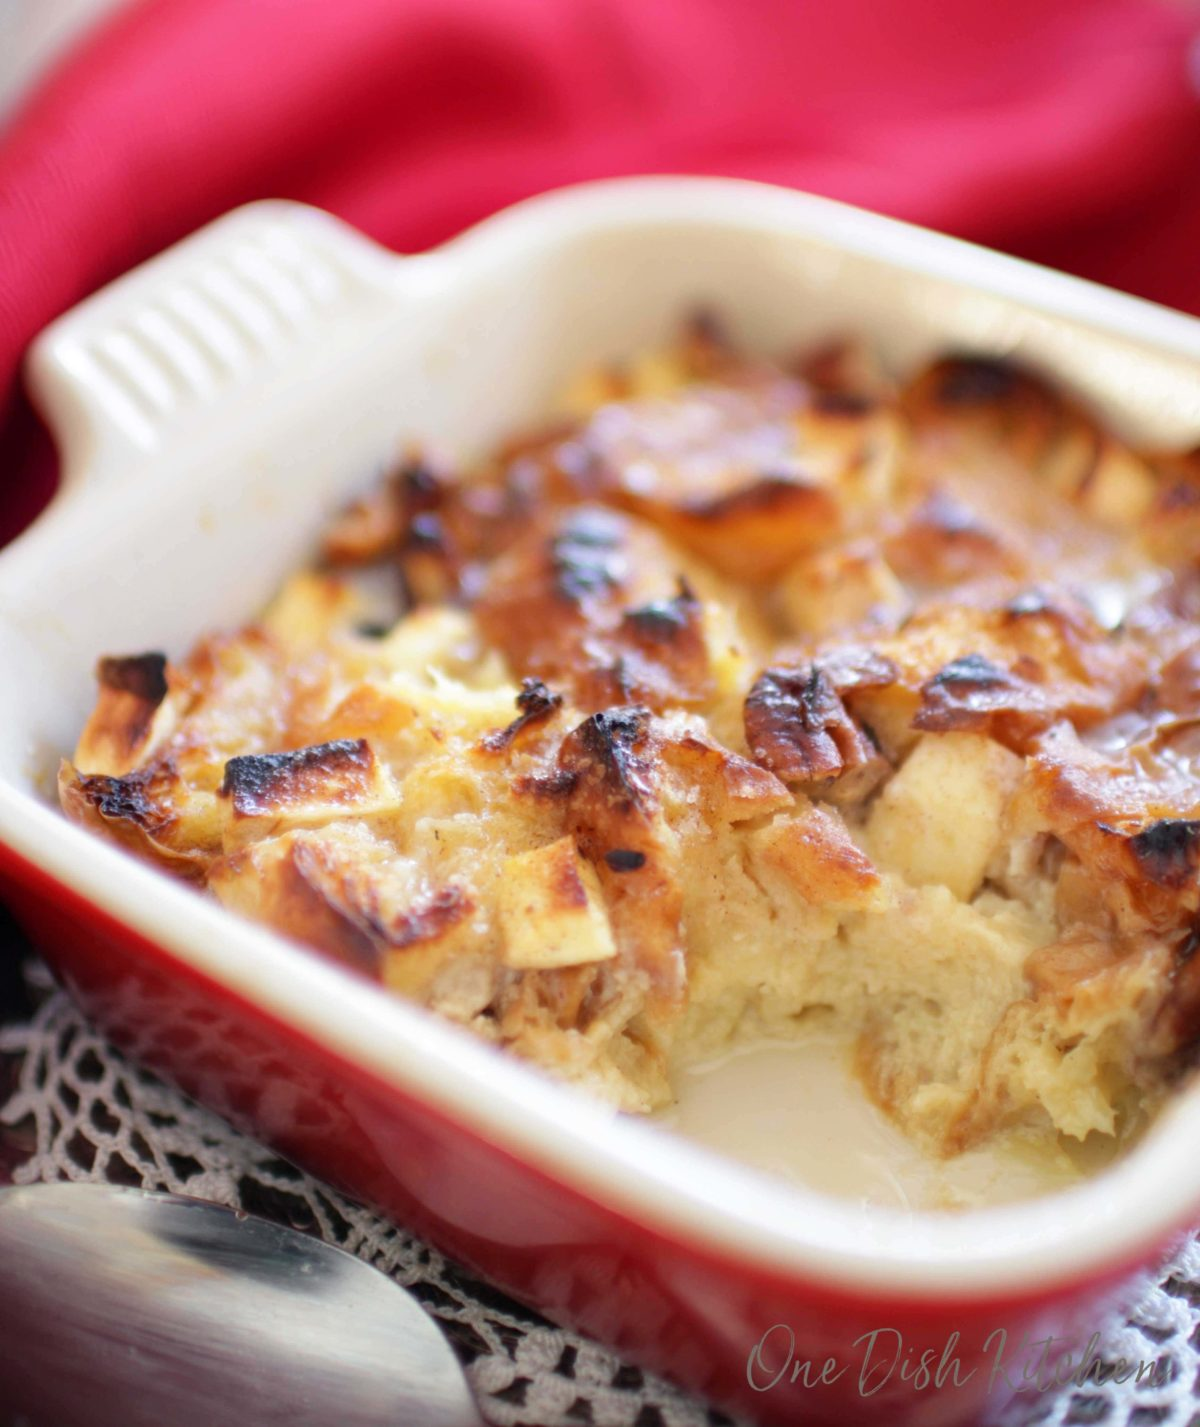 A partially eaten breakfast bread pudding made with bits of croissants on a tray.